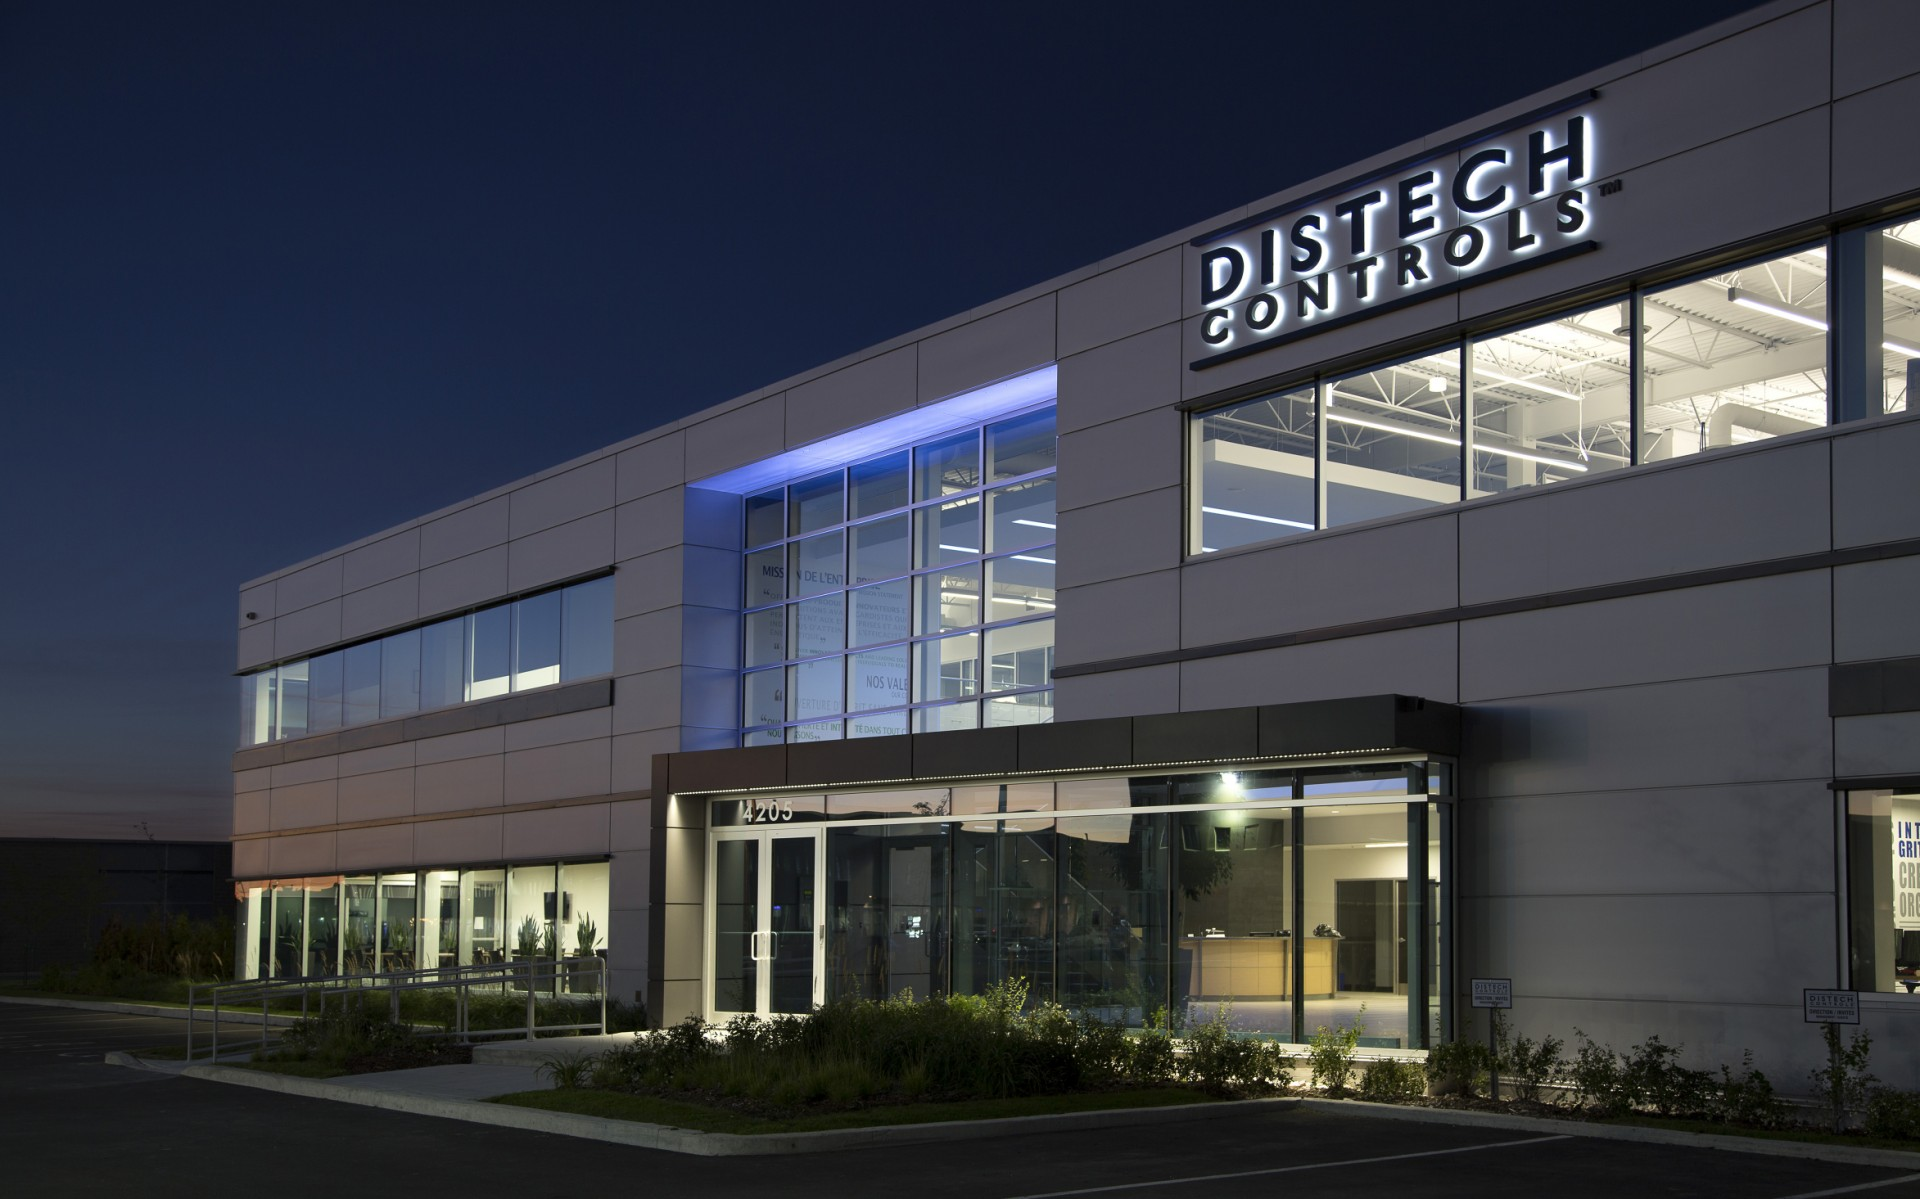 Distech Controls in Brossard, Quebec, is a global leader in building automation and energy management solutions.